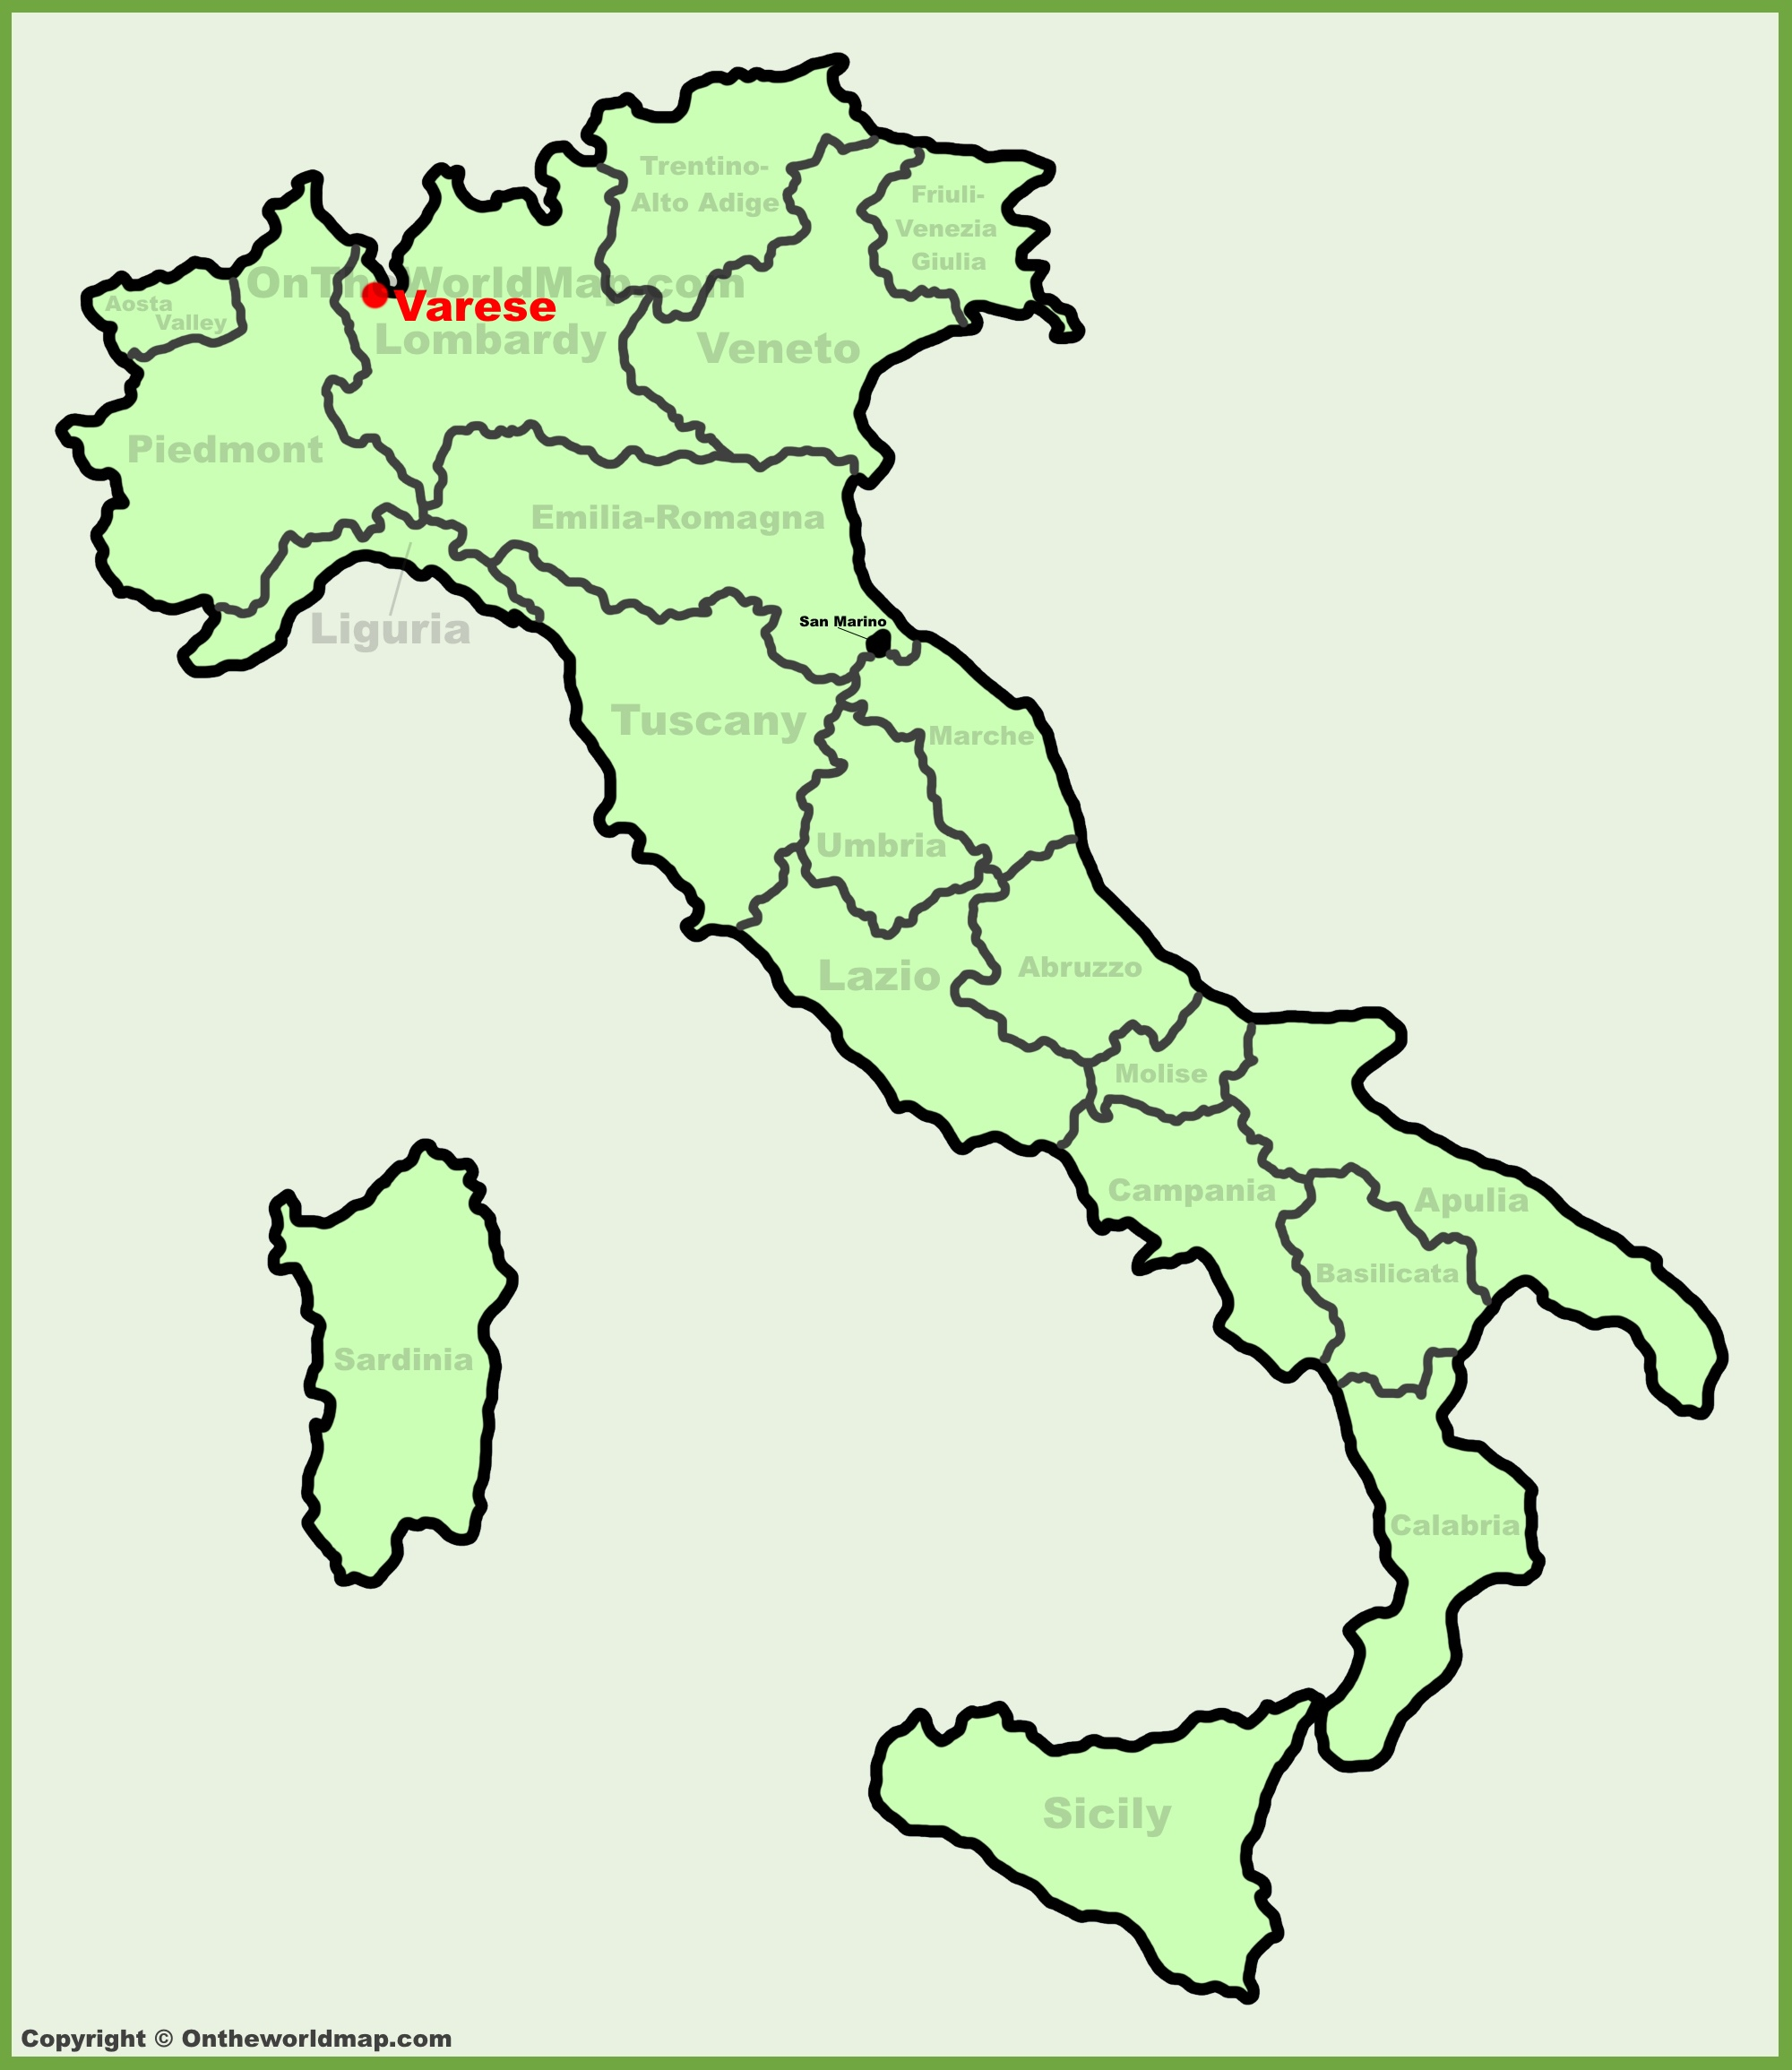 Varese location on the Italy map